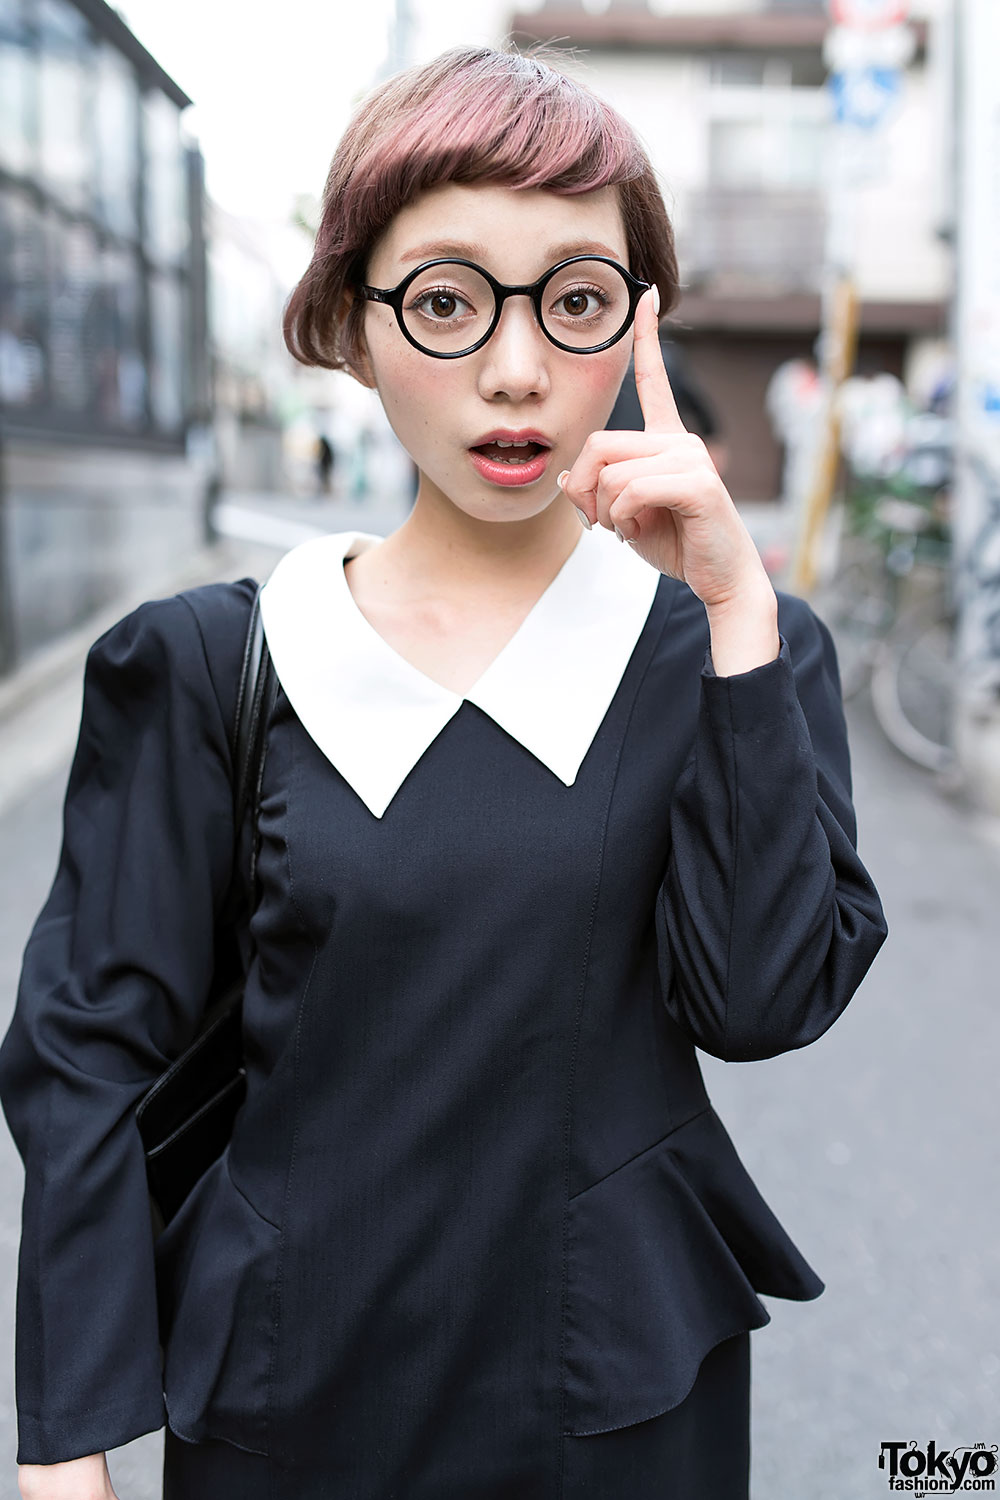 cute short hairstyle, round glasses & peter pan collar dress in